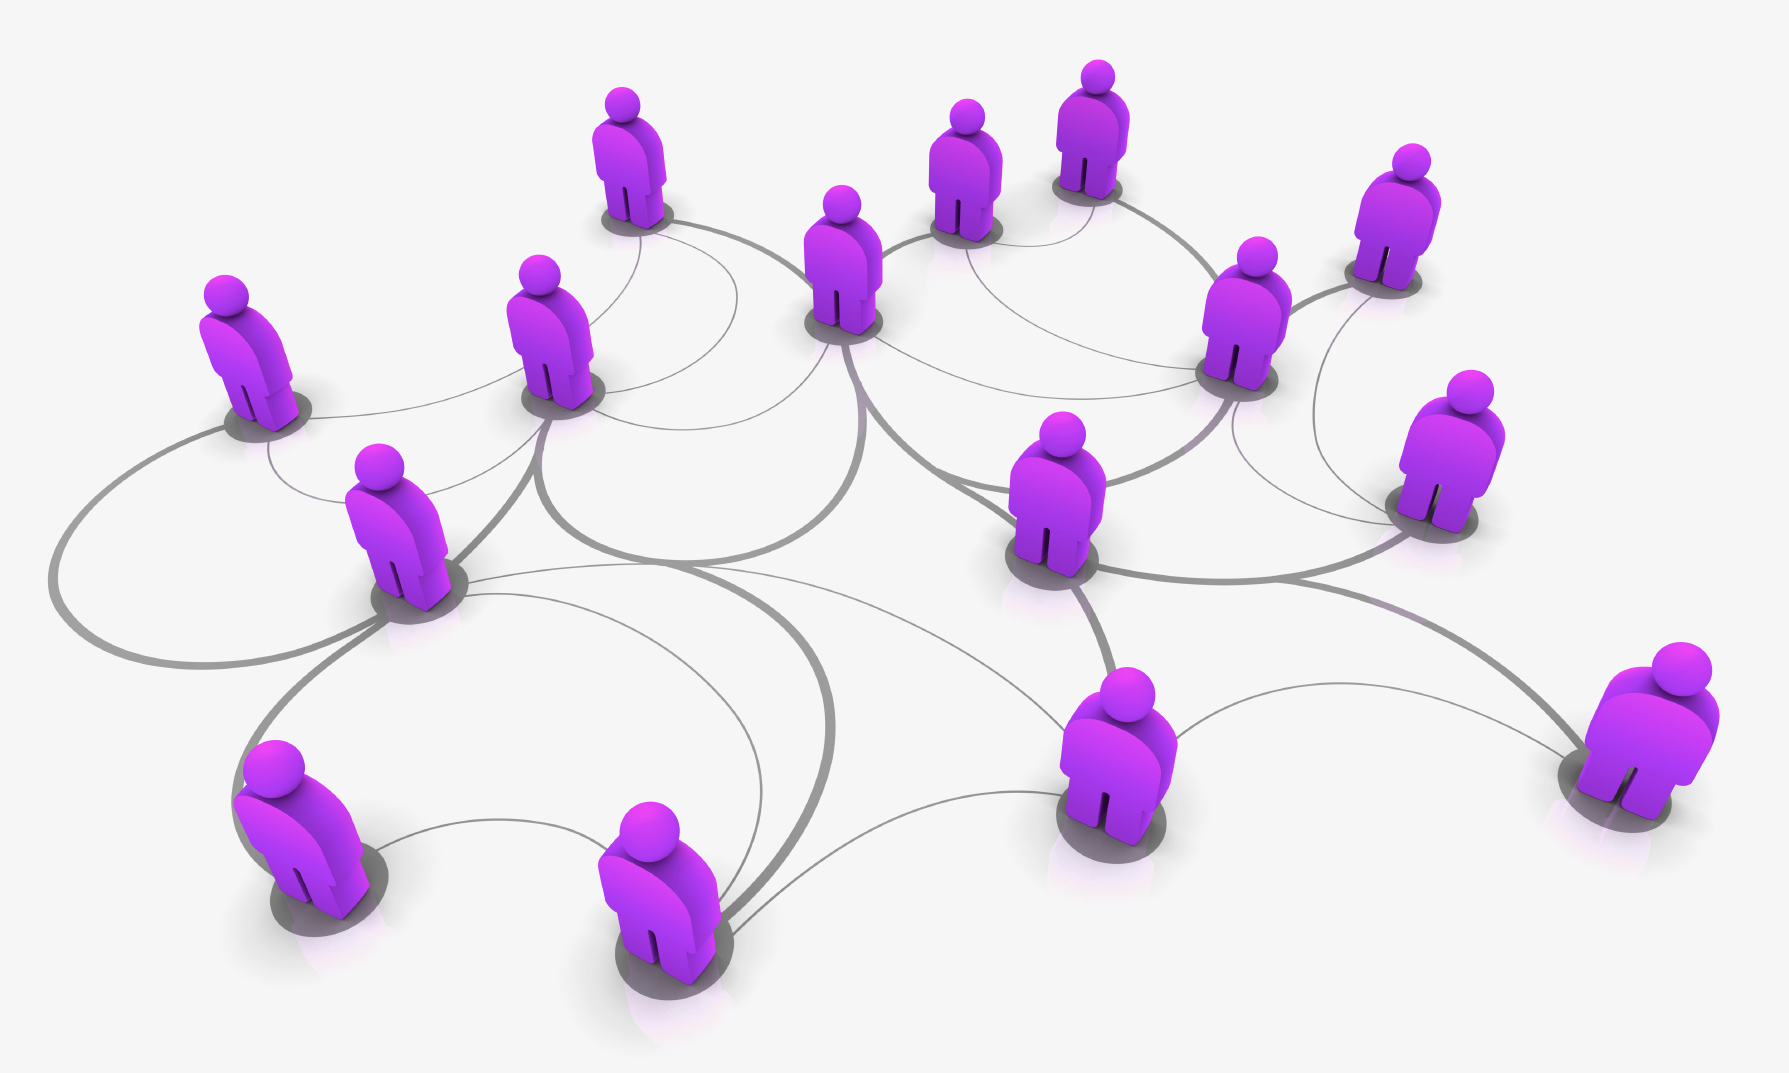 The Purple Society Network